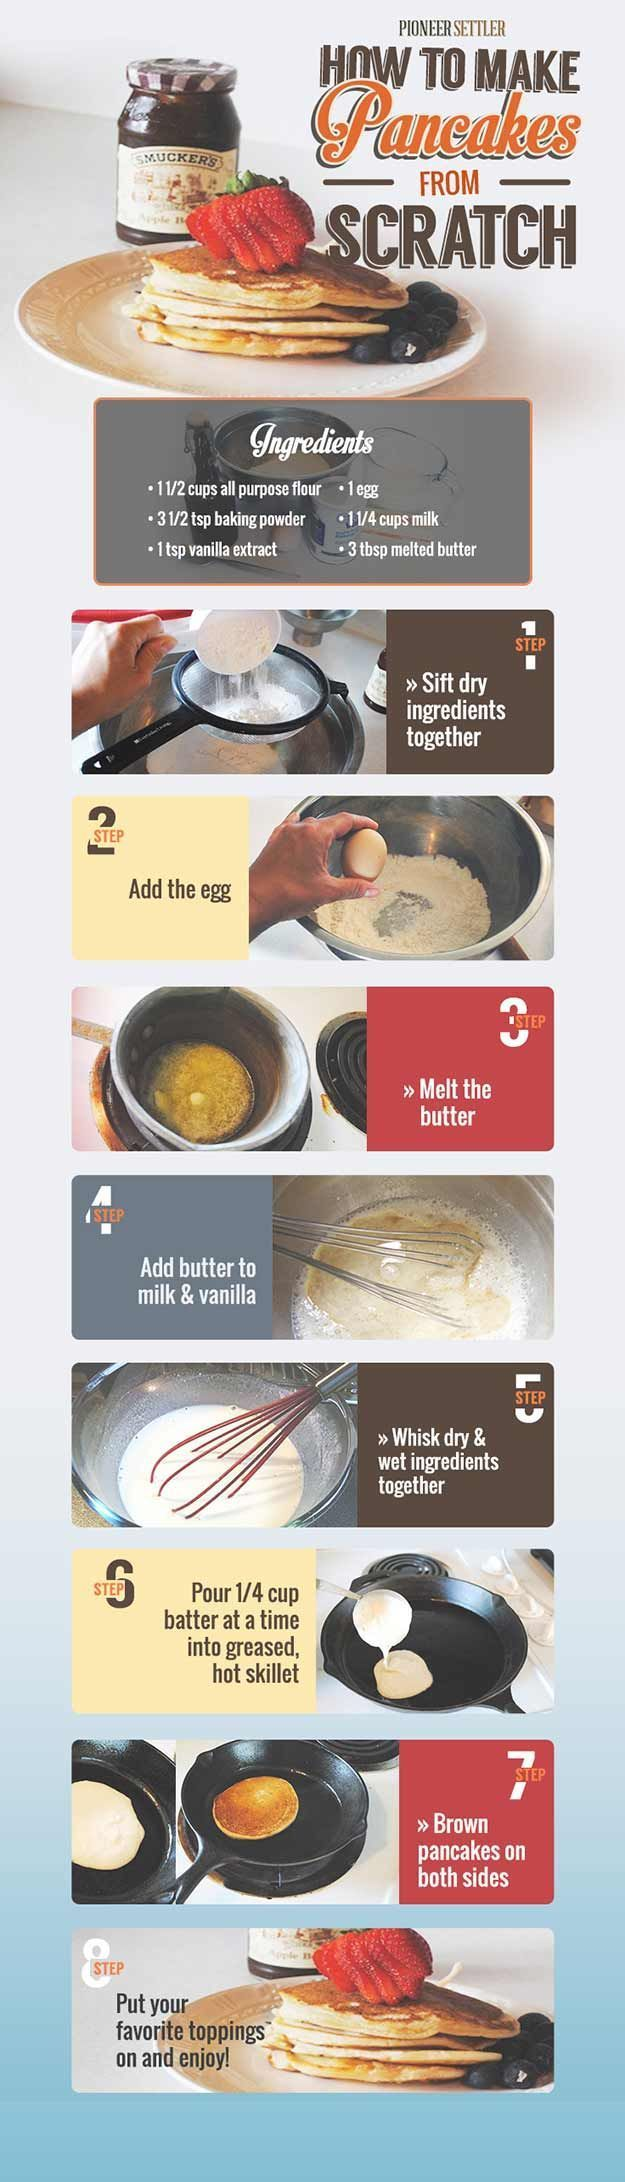 How to Make Pancakes from Scratch - Perfect Pancake Recipe | Easy and Quick Homemade Recipe by Pioneer Settler http://pioneersettler.com/how-to-make-pancakes-from-scratch/